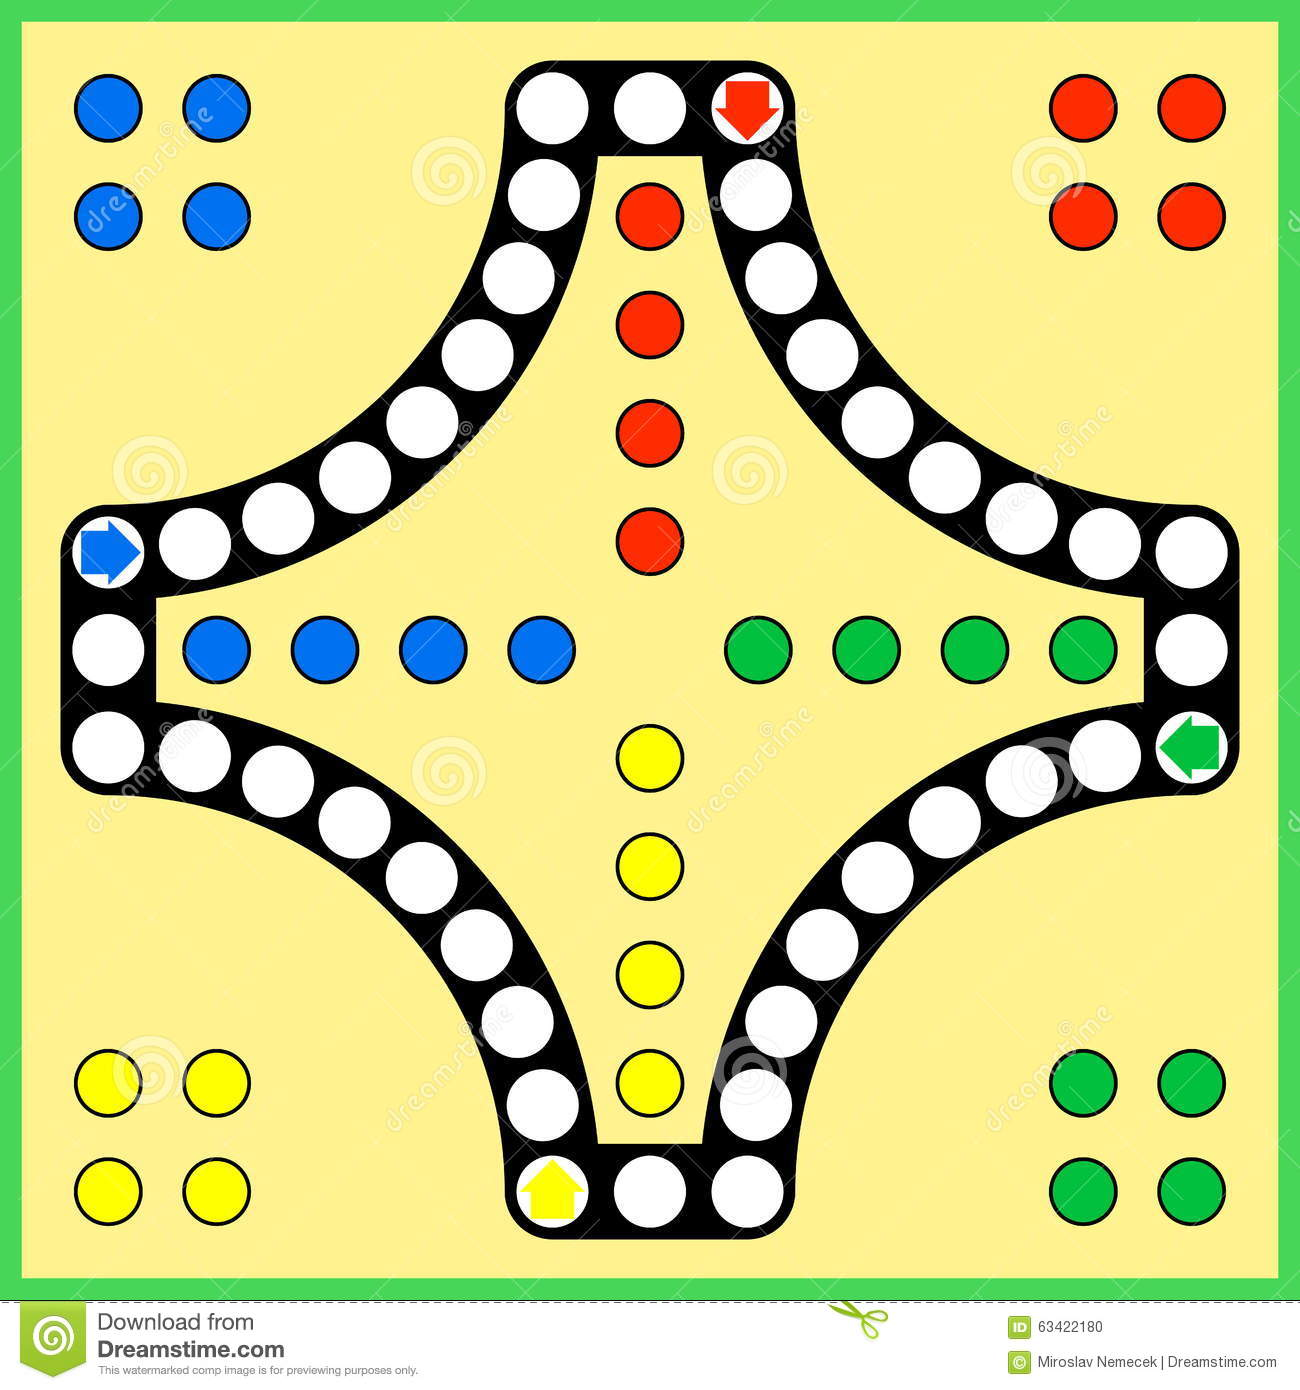 how to play ludo game in malayalam